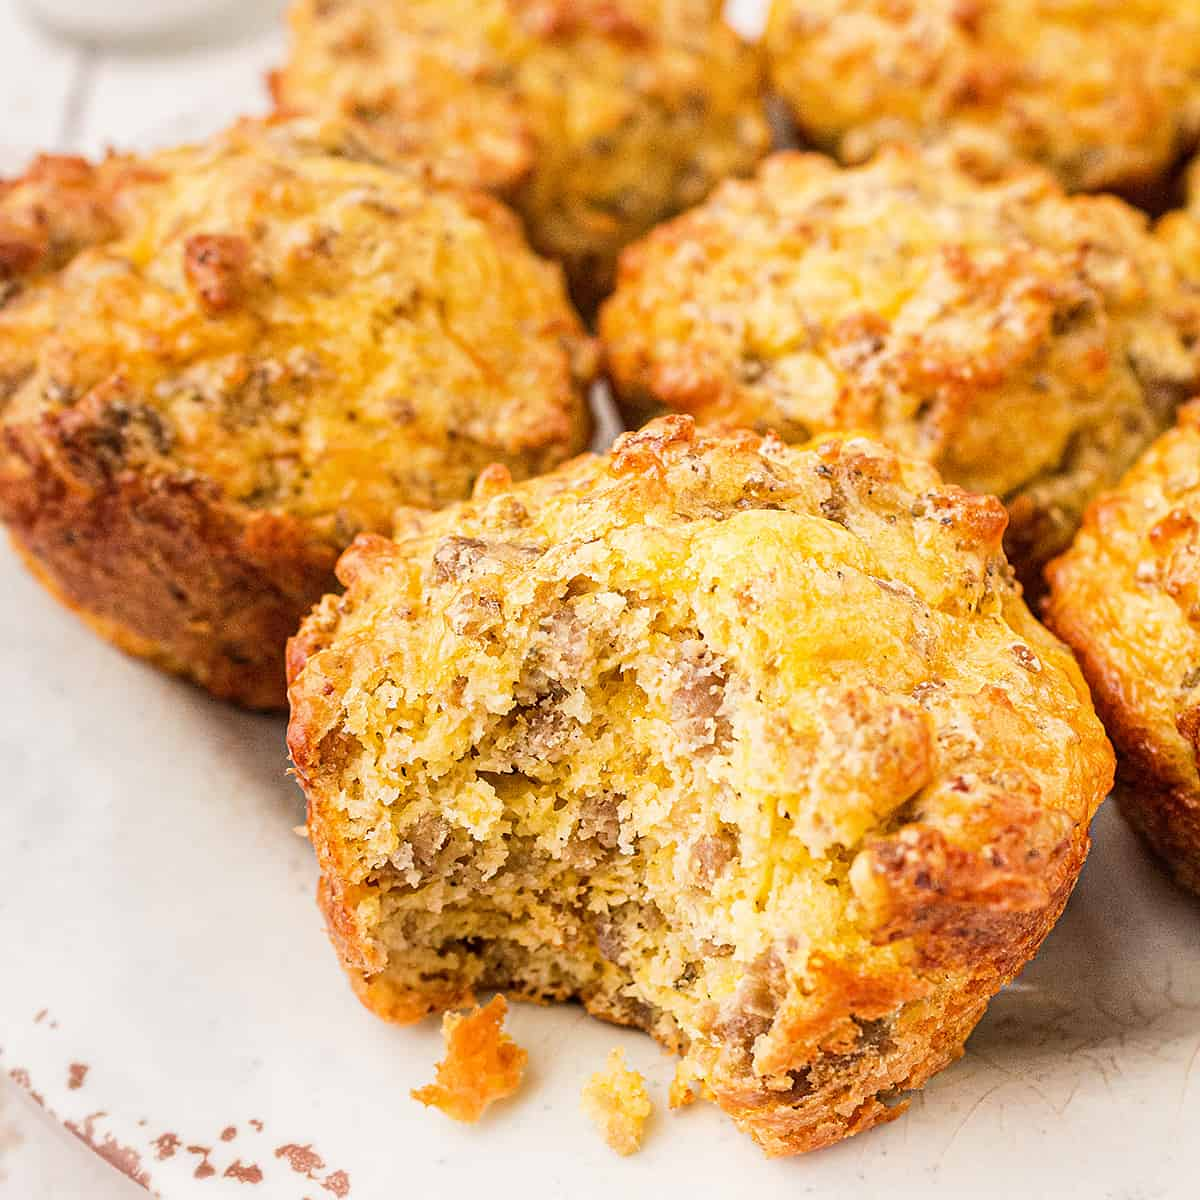 Easy Sausage Muffins - savory sausage muffins with eggs and cheddar cheese. Great grab-and-go breakfast for busy mornings. From @NevrEnoughThyme https://www.lanascooking.com/easy-sausage-muffins/